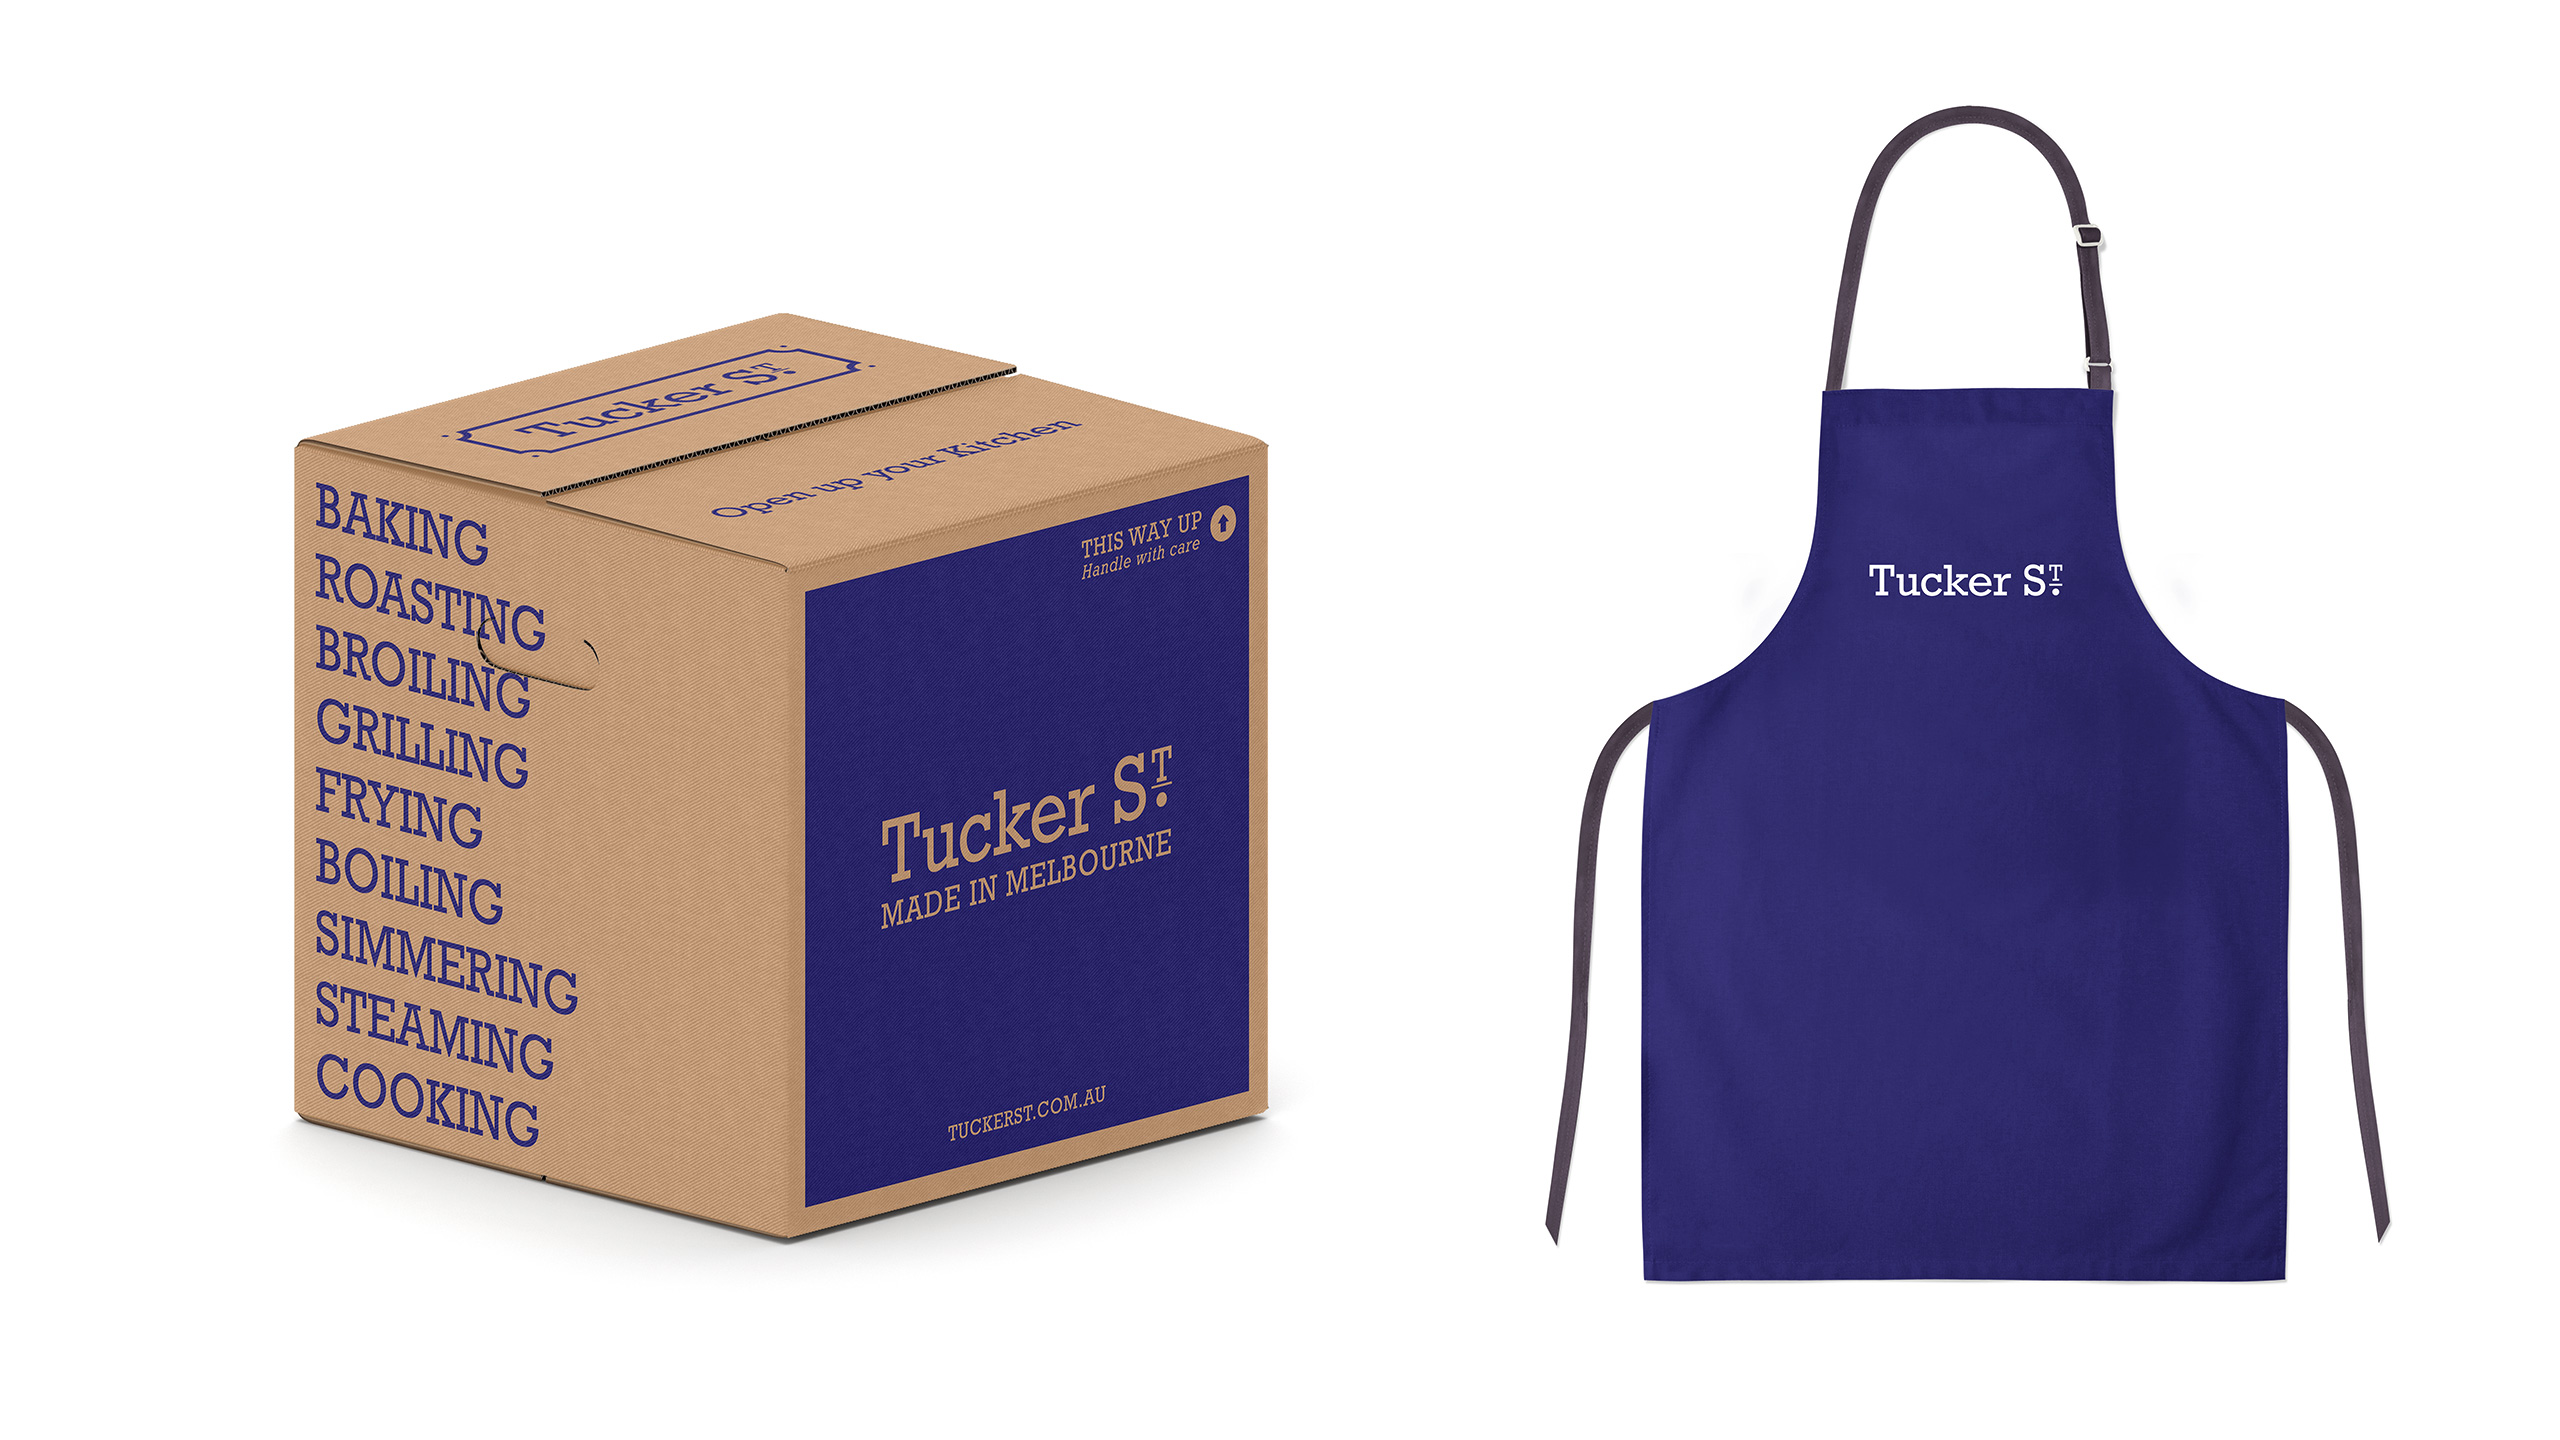 tucker-street-box-apron